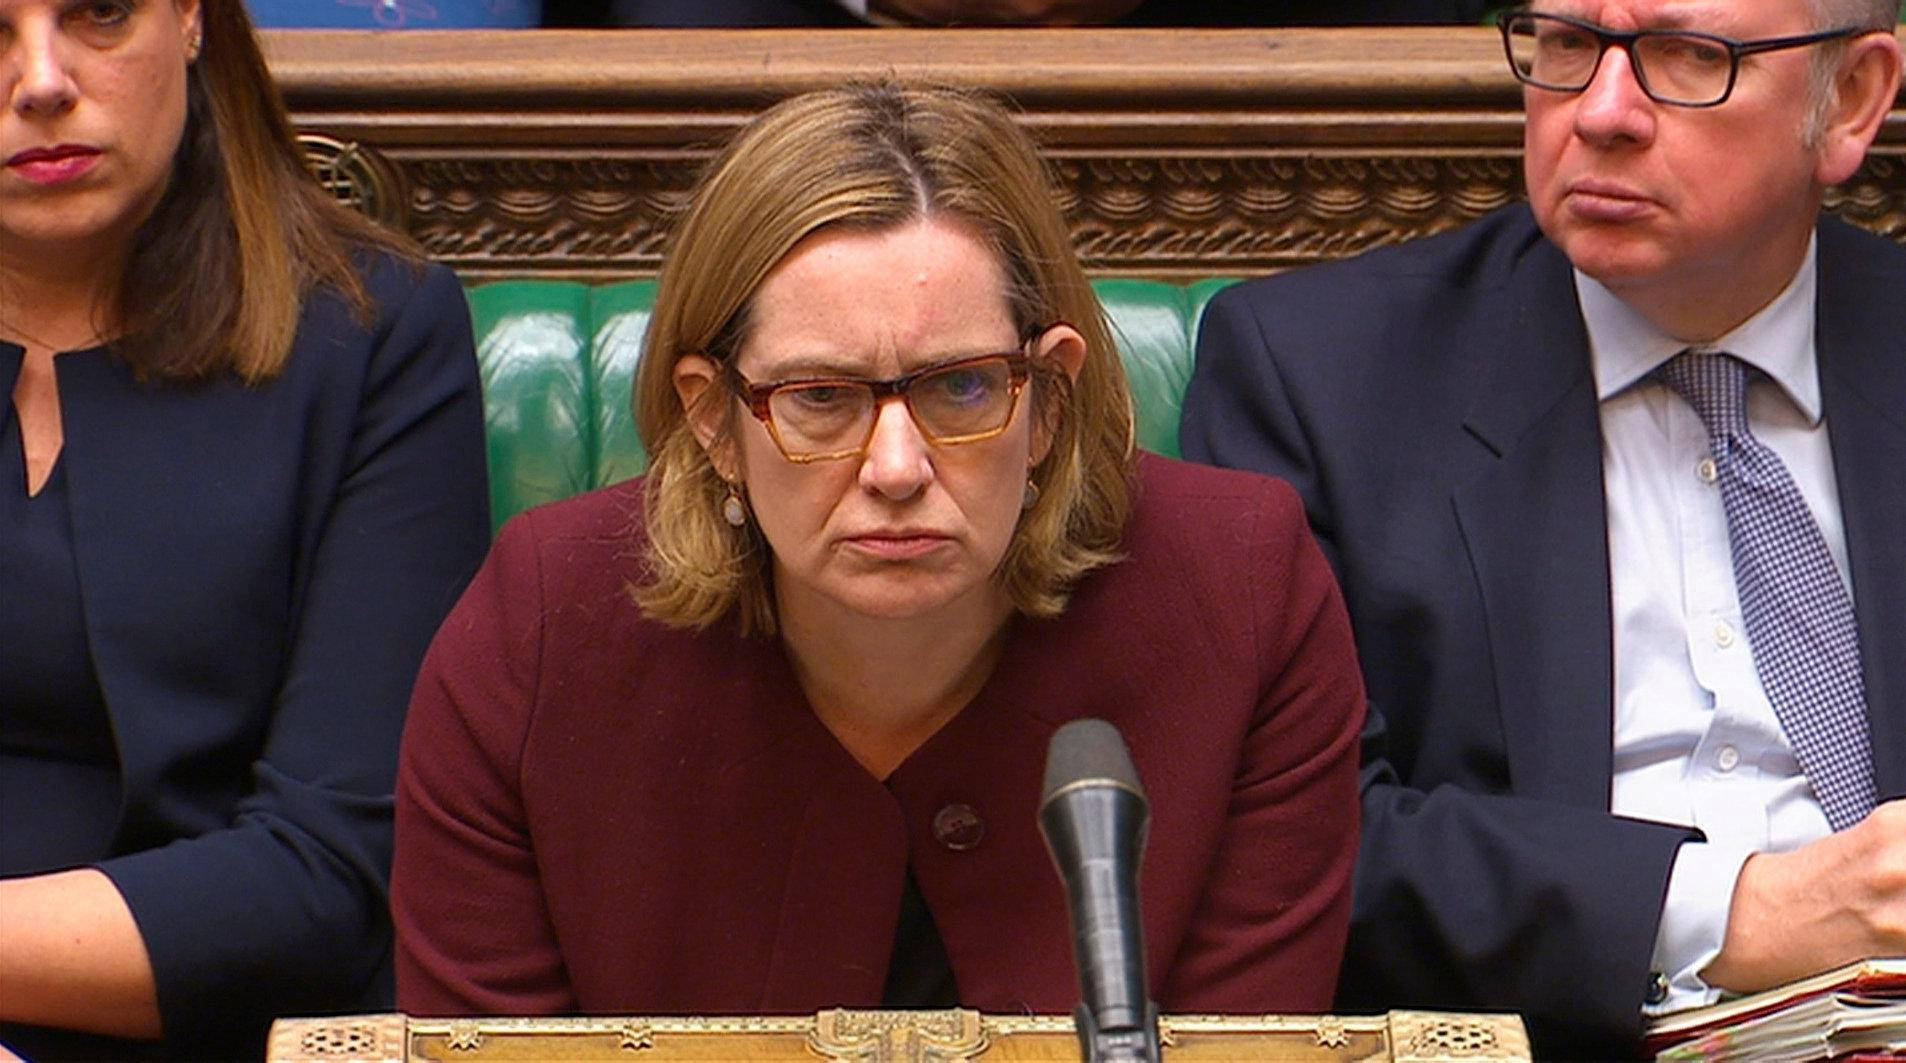 Home Sec Amber Rudd defies PM by saying Britain may stay in Customs Union